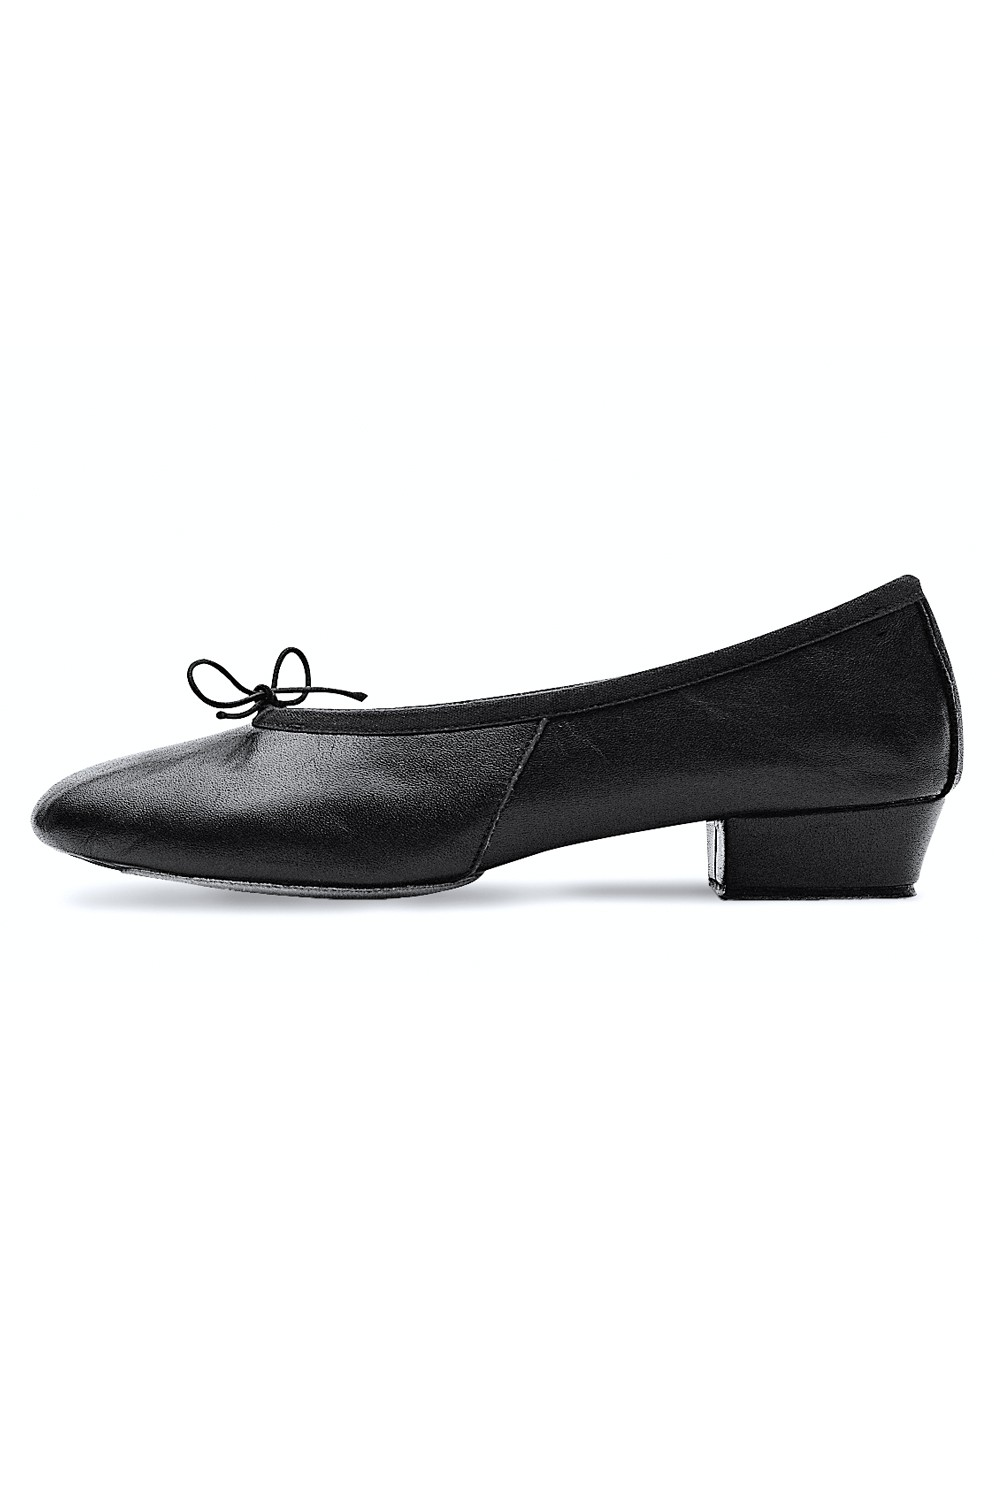 Paris Women's Teaching Shoes